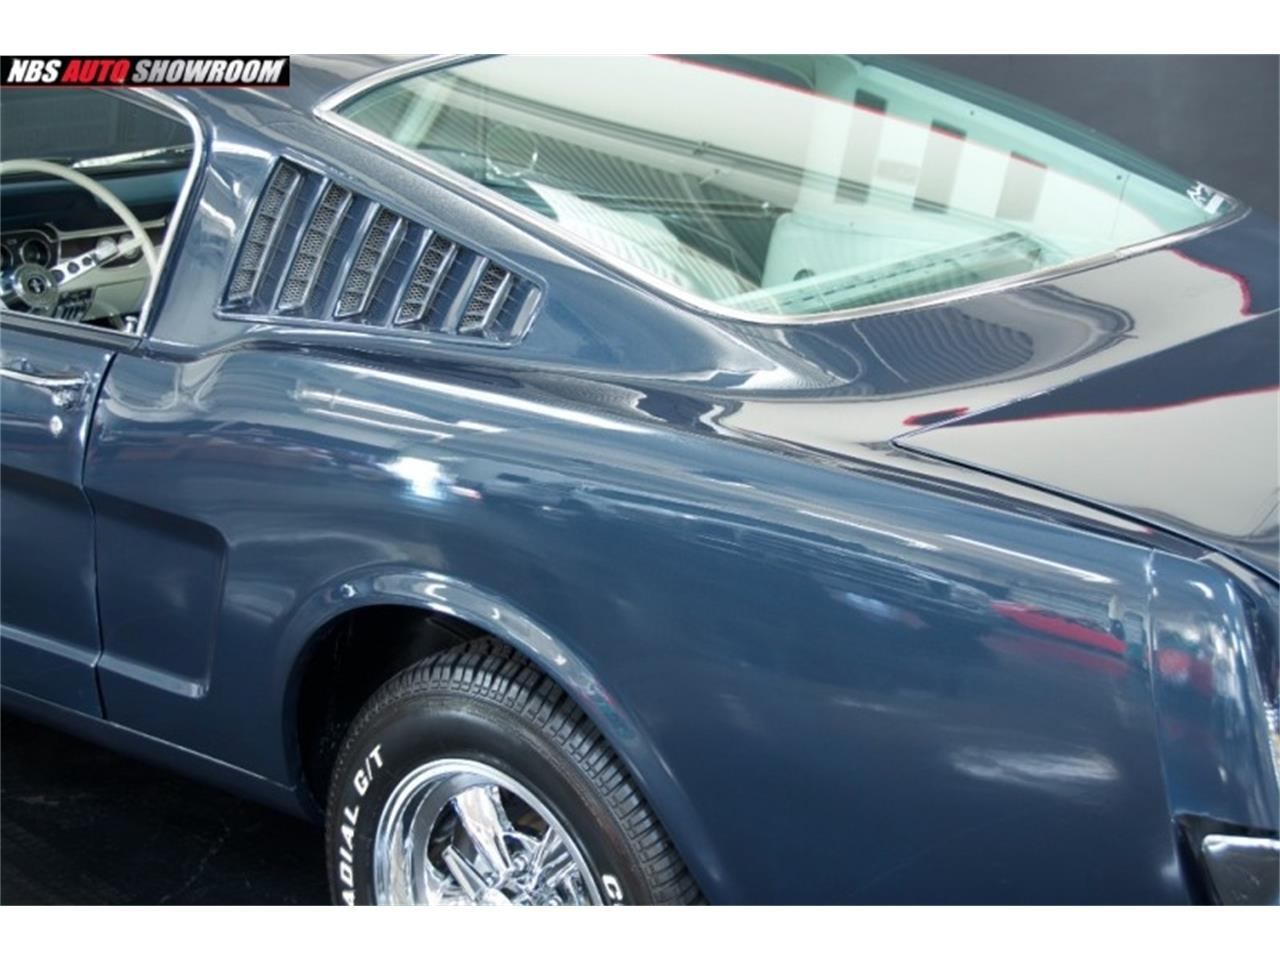 Large Picture of '65 Ford Mustang located in Milpitas California - $37,074.00 Offered by NBS Auto Showroom - PHR5